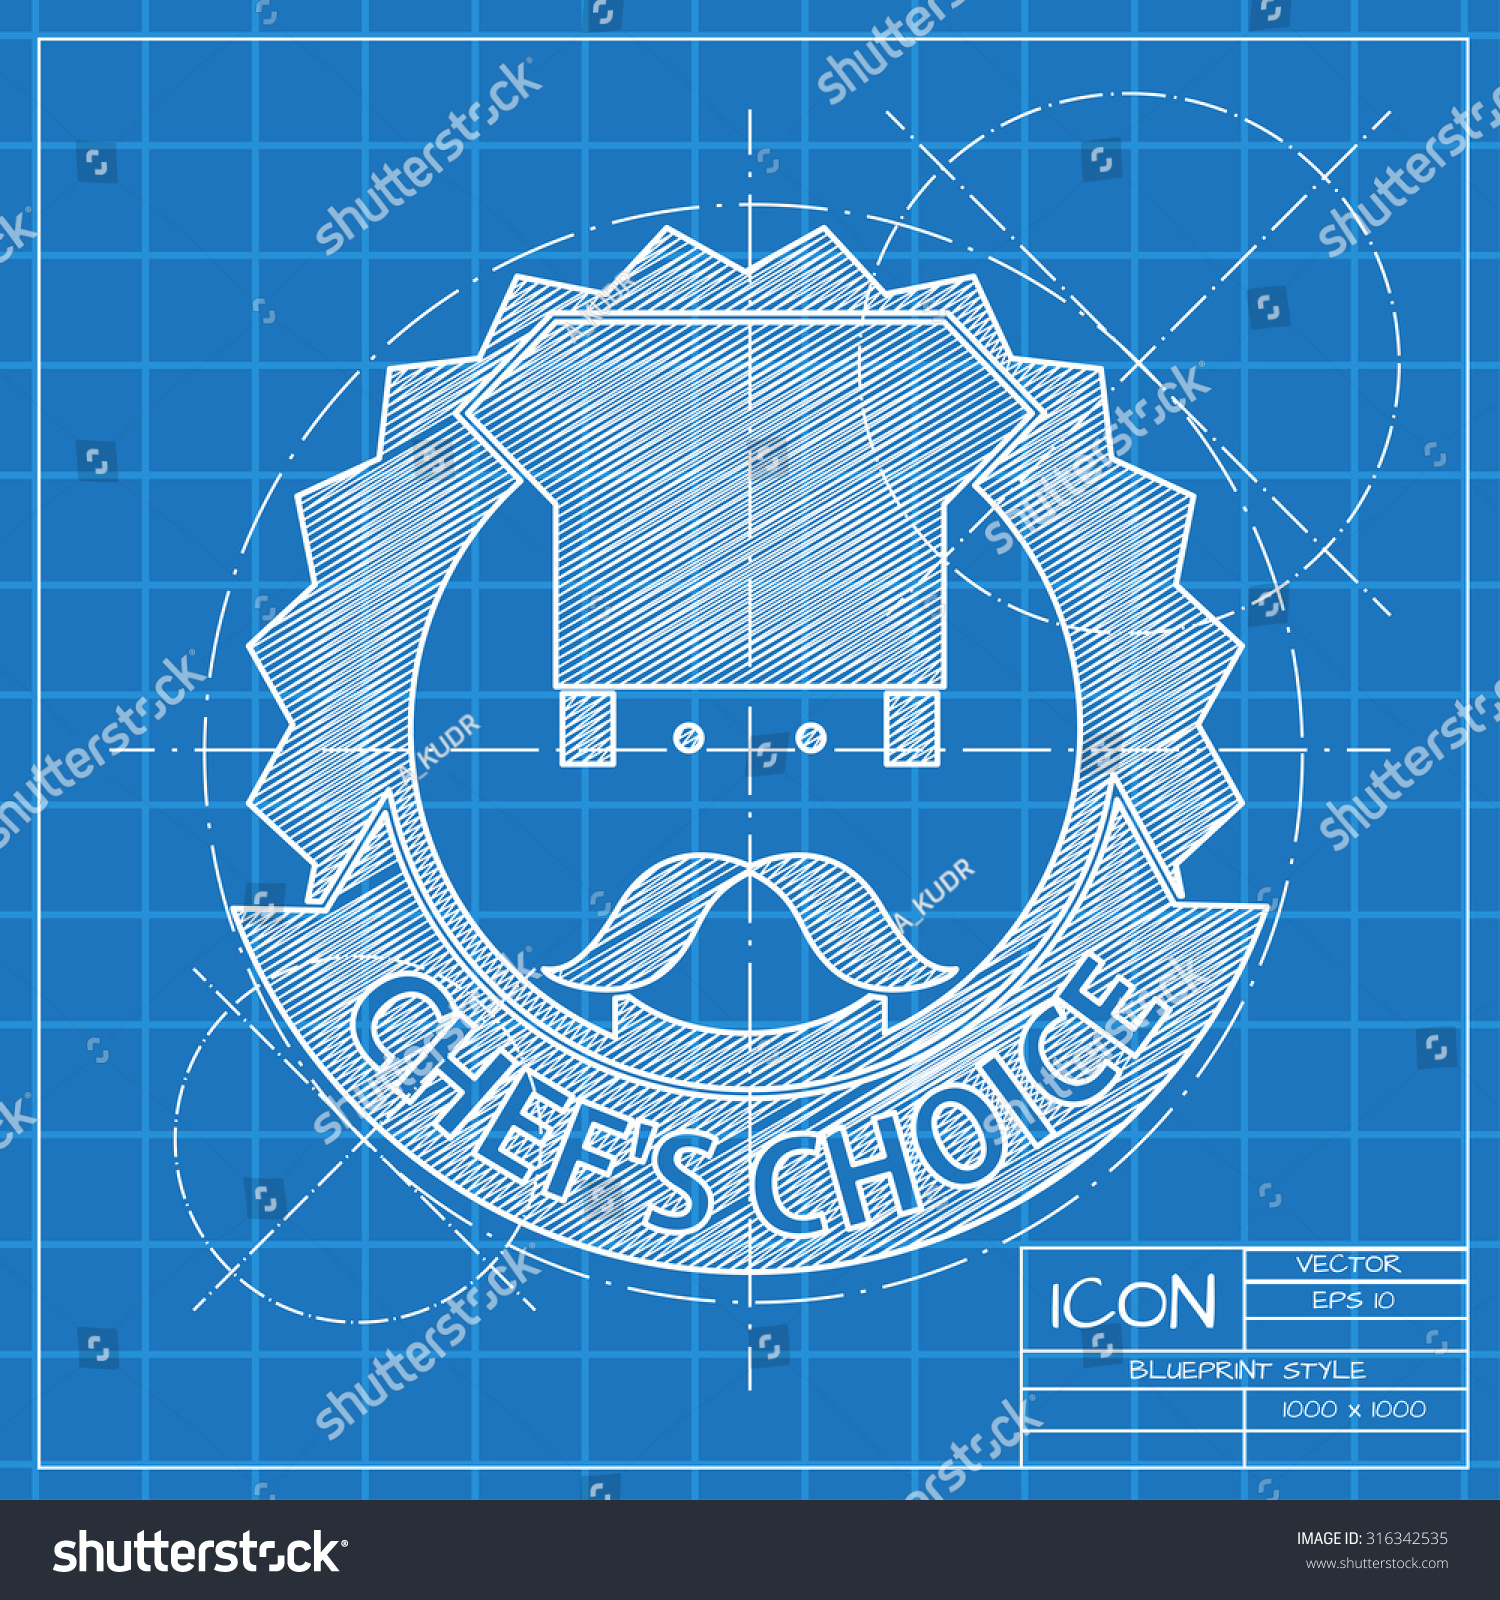 Vector blueprint chef cook chois emblem stock vector 316342535 vector blueprint chef cook chois emblem icon on engineer or architect background malvernweather Gallery